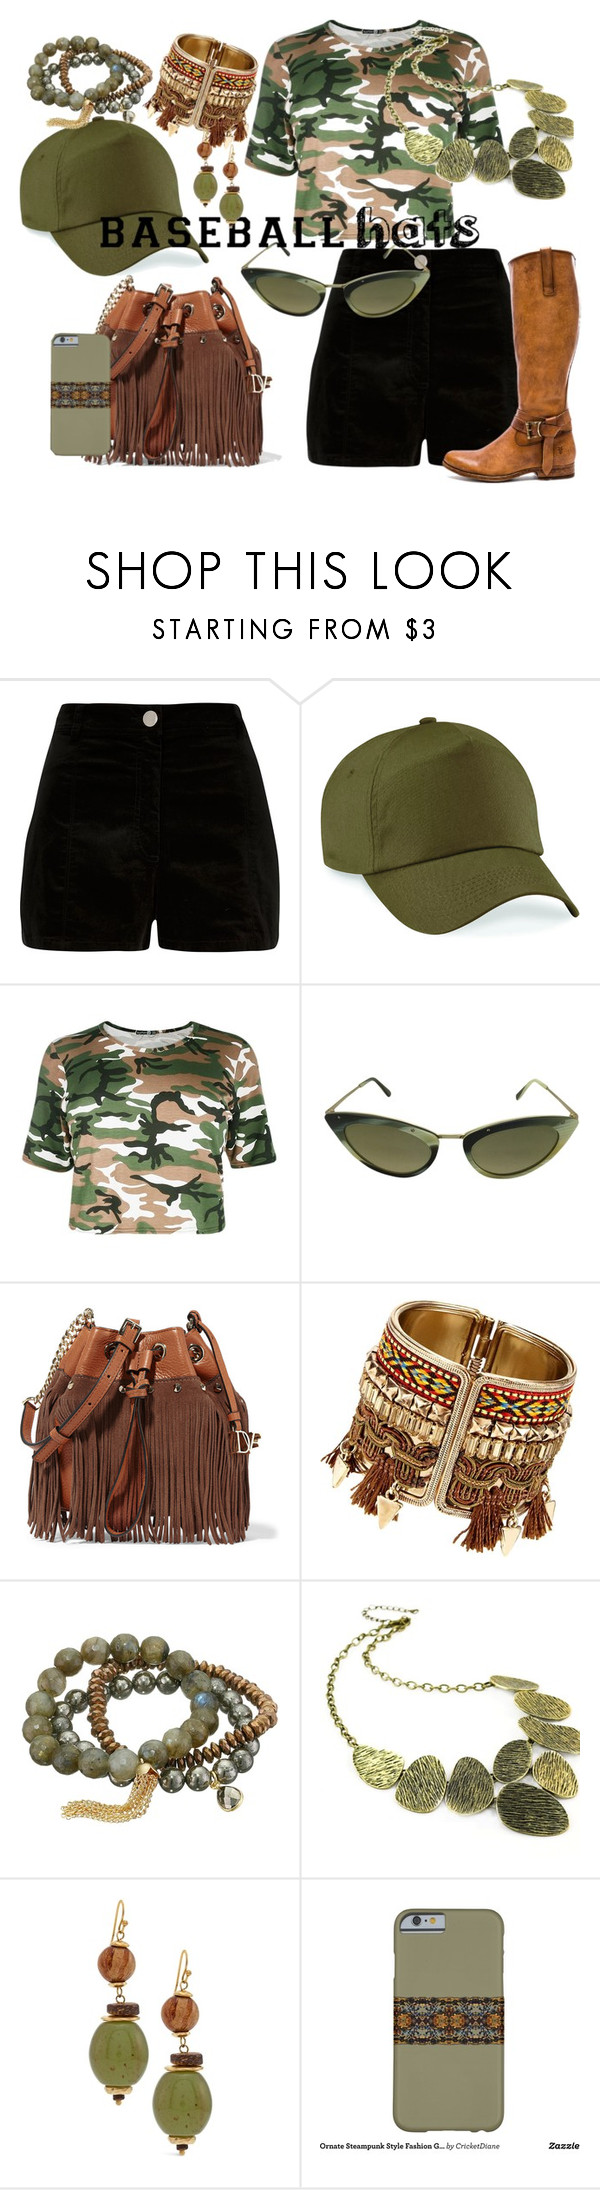 """""""Forest Inspired Outfit for Summer with Olive Green Ballcap"""" by cricketdiane ❤ liked on Polyvore featuring River Island, Tom Ford, Diane Von Furstenberg, Dee Berkley, Emi Jewellery, Chico's and Frye"""